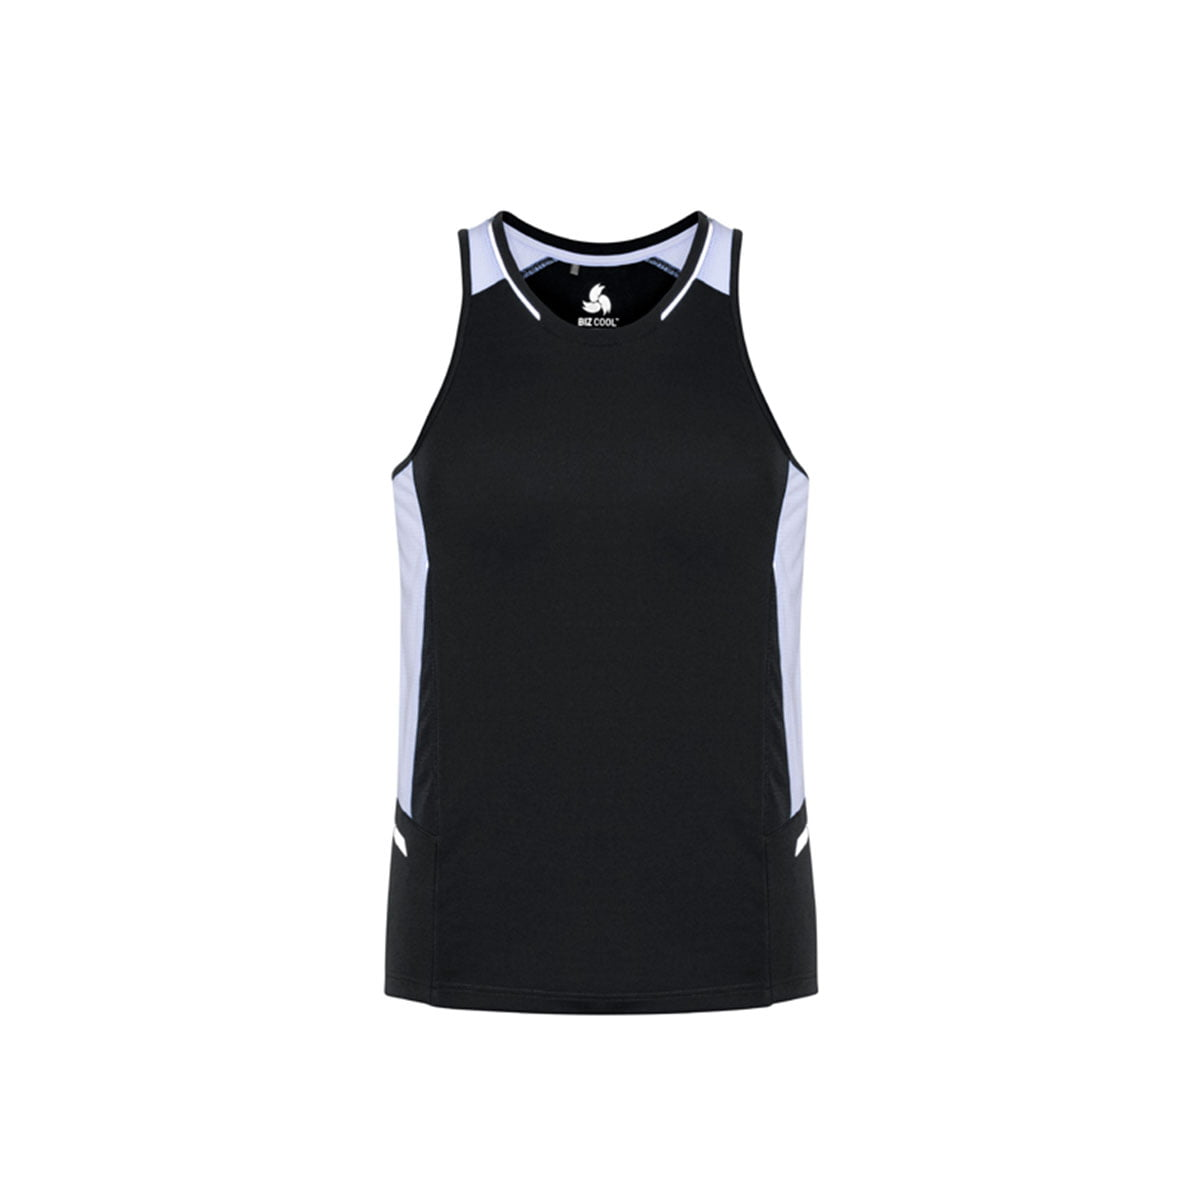 Mens Renegade Singlet-Black / White / Silver